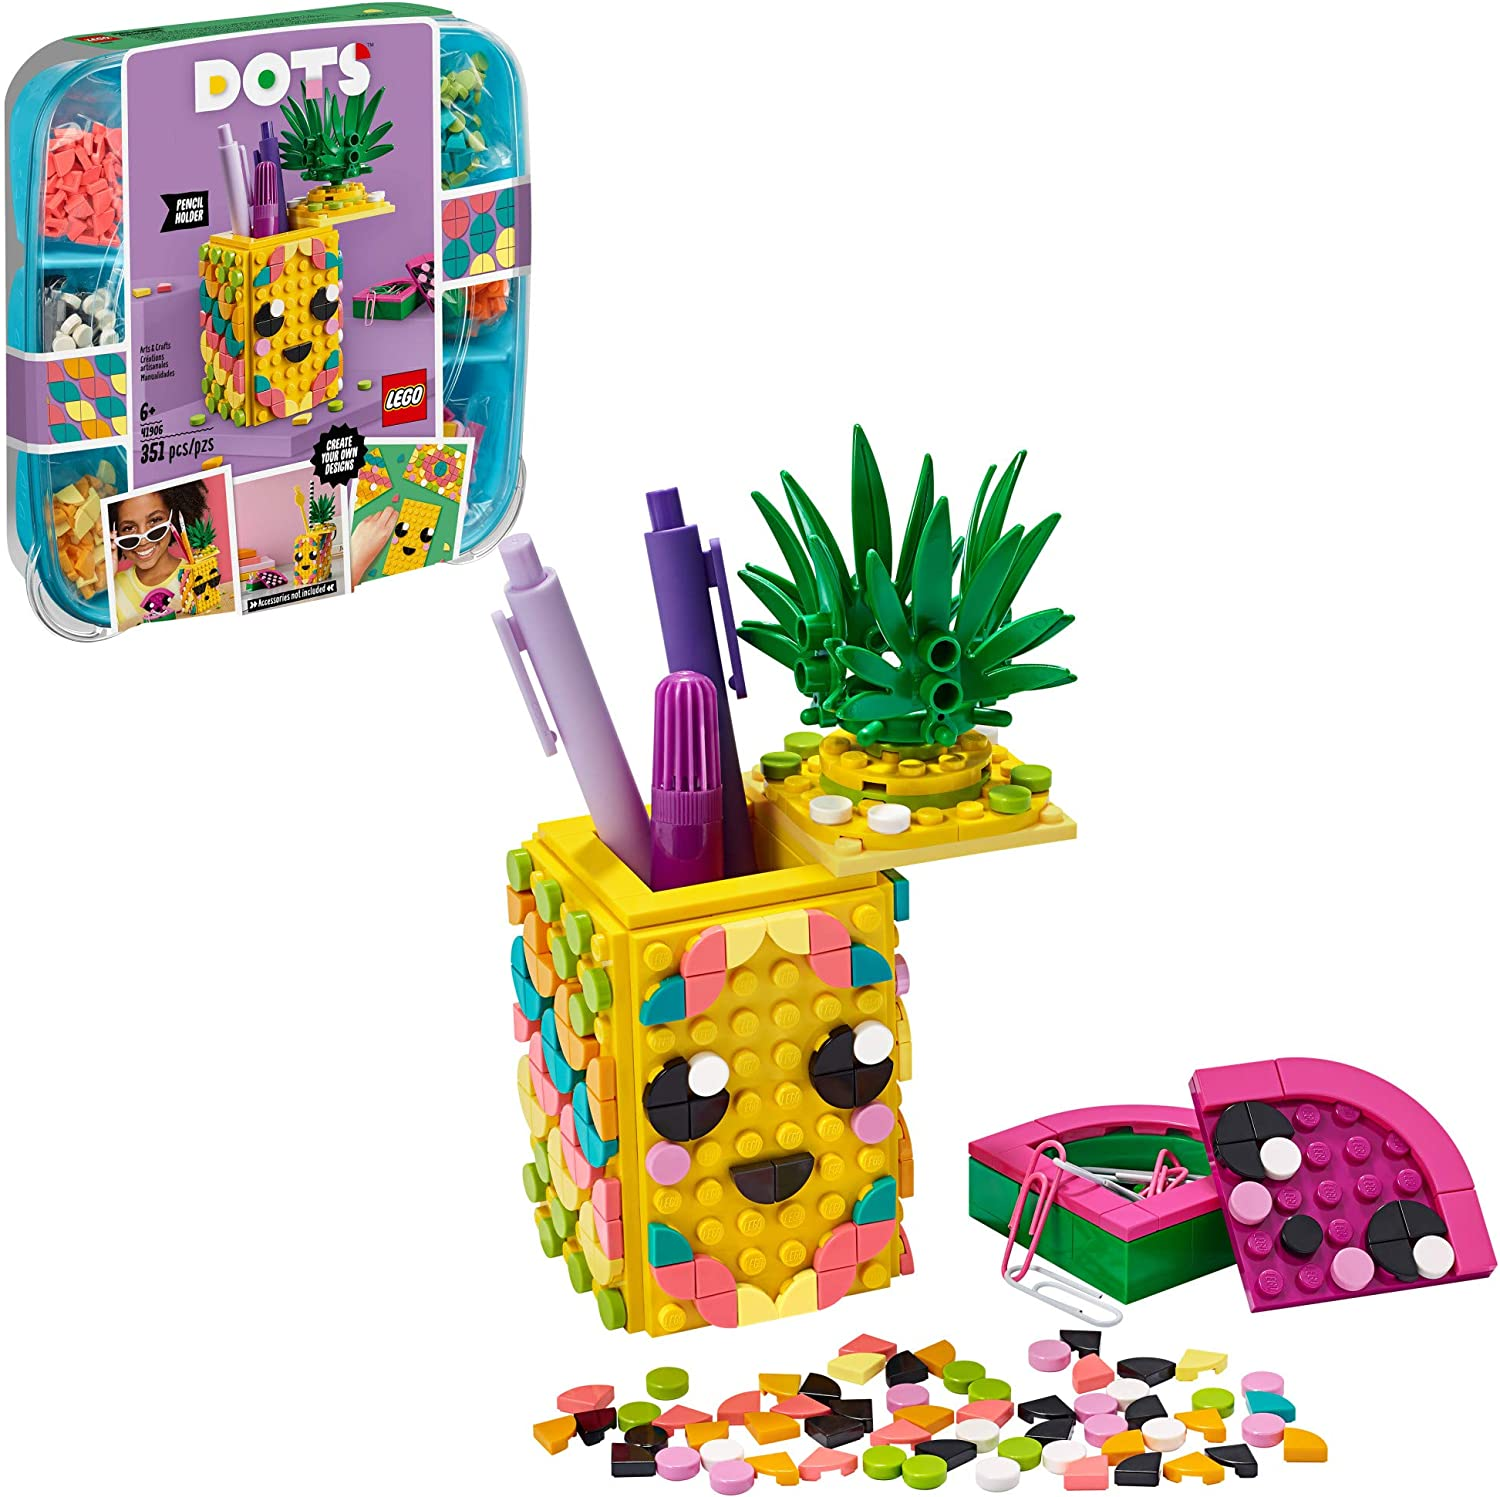 LEGO DOTS Pineapple Pencil Holder 20 DIY Craft Decorations Kit, A Fun  Craft kit for Kids who Like Arts and Crafts Projects, That Also Makes a  Great ...